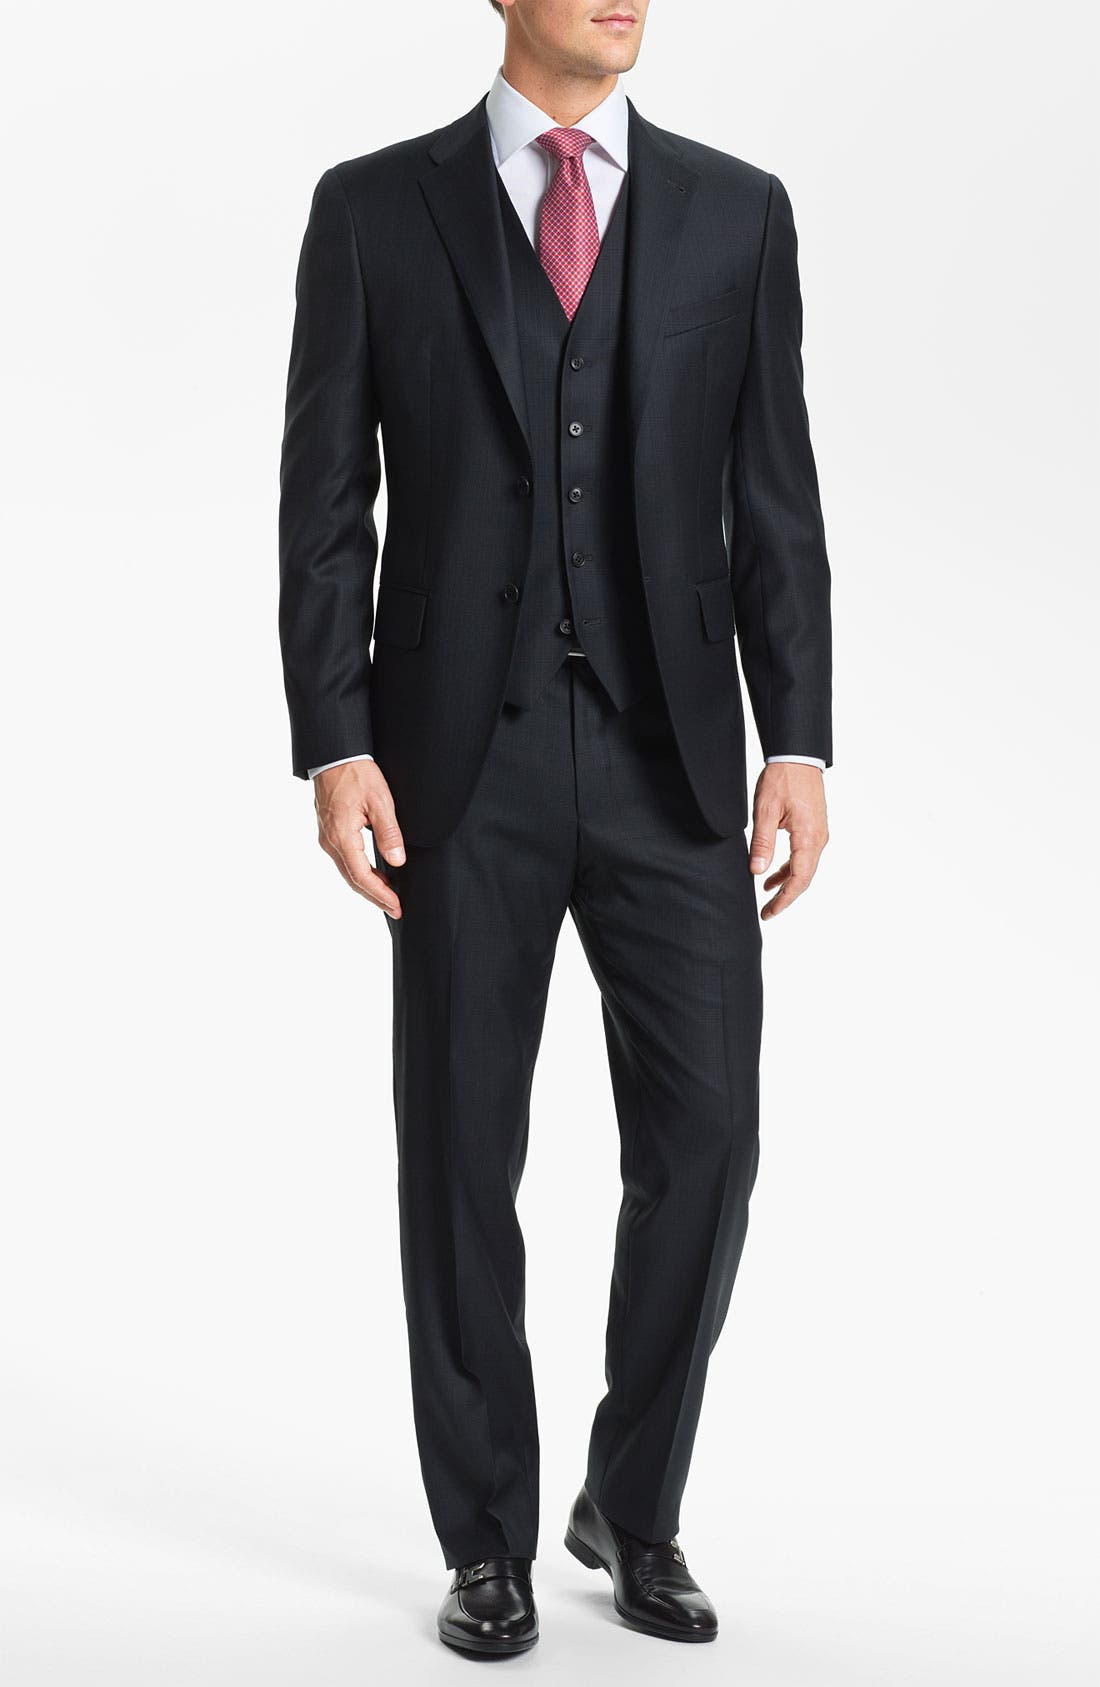 Alternate Image 2  - Joseph Abboud Trim Fit Three Piece Suit